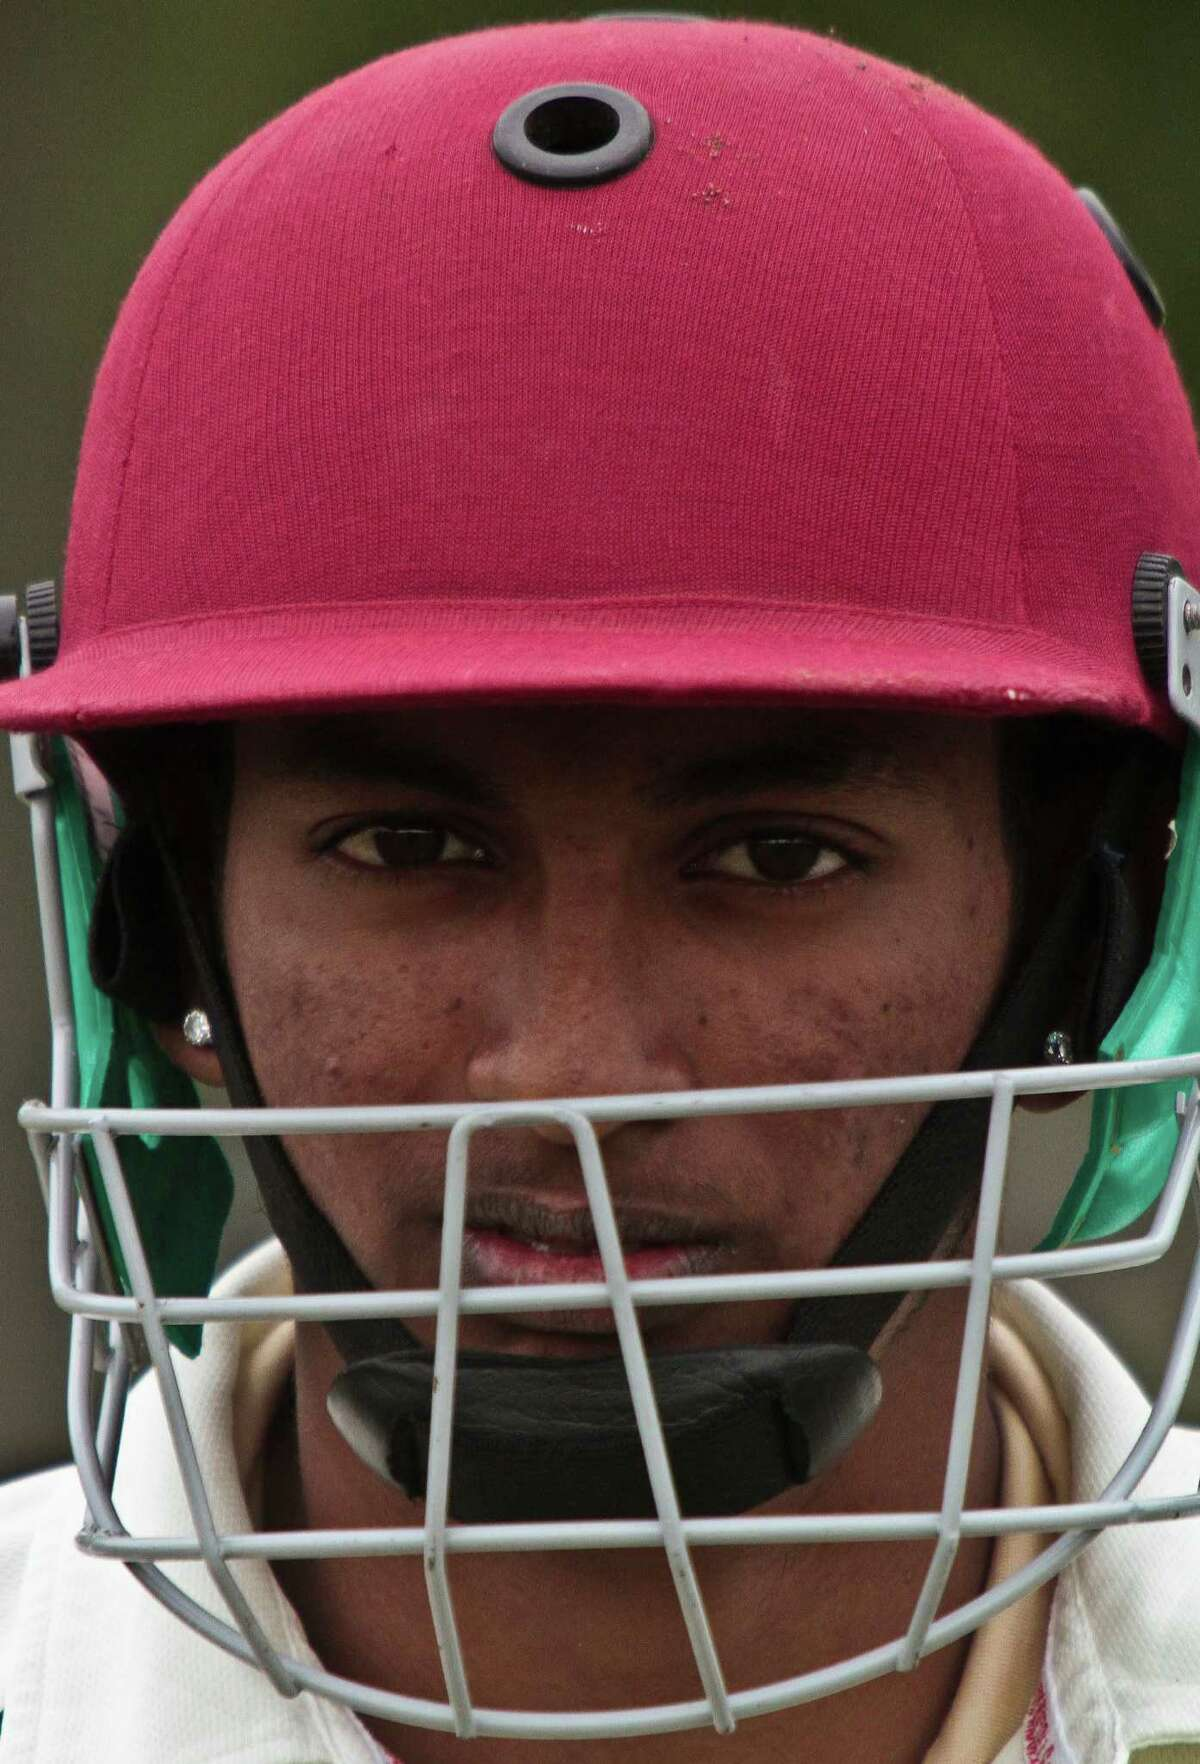 In this May 12, 2014 photo, Derick Narine, currently the top cricket player in the Public School Athletic League (PSAL) from John Adams High School, wears a helmet as he prepares to bat in a match against Midwood High School at Marine Park in the Brooklyn borough of New York. Narine, a junior from Guyana and a member of its under-19 national squad, scored over 50 runs in a 112-80 win. The helmet helps avoid injury as batters try to score runs off a hard cricket ball bowled at speeds that often reach over 90 mph. (AP Photo/Bebeto Matthews) ORG XMIT: NYBM715